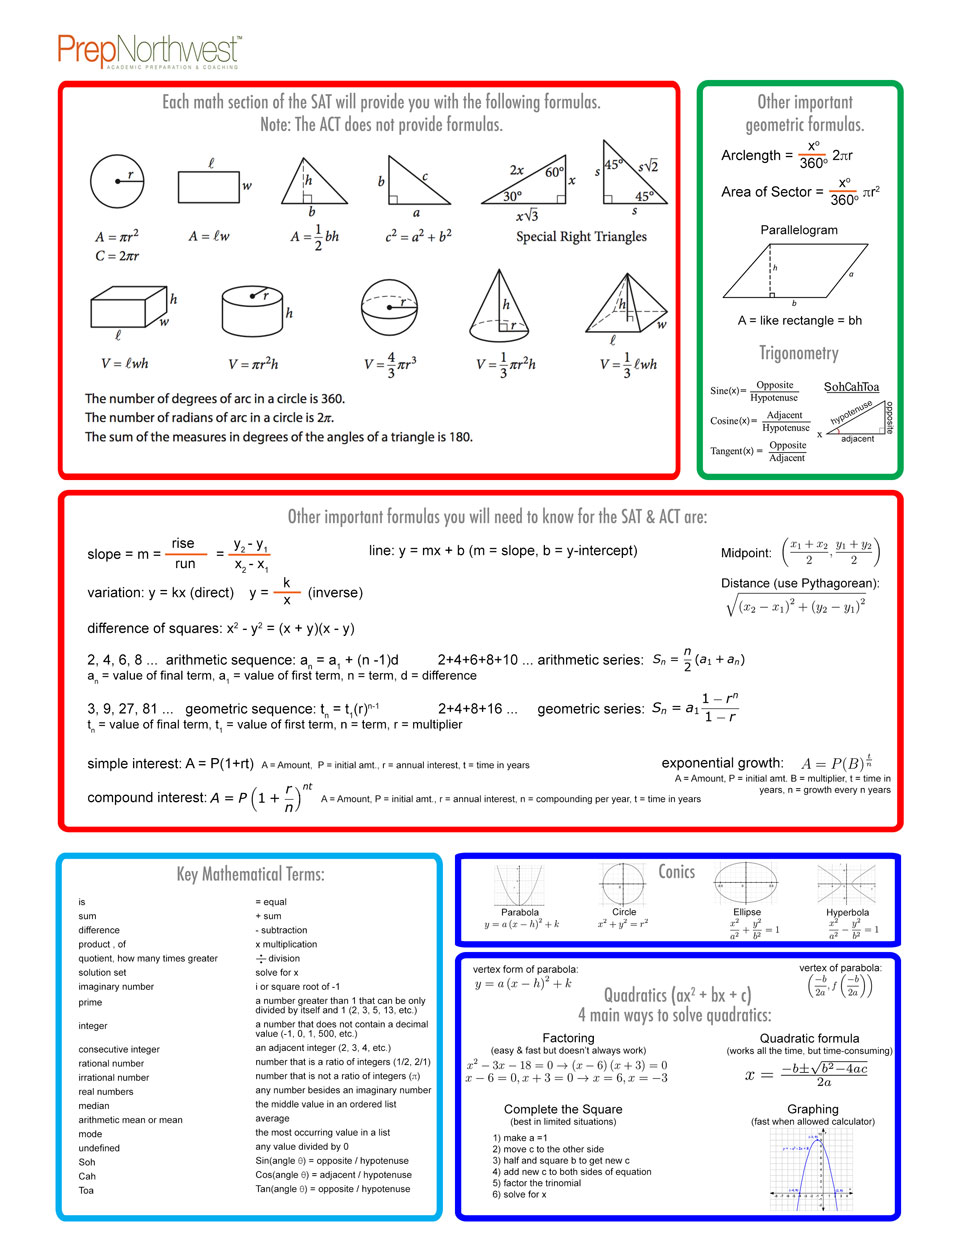 Worksheets Act Math Worksheets prepnorthwest math help rockin the acts and sats require knowing a lot of background knowledge download your free sat act formulas sheet get to studying yo